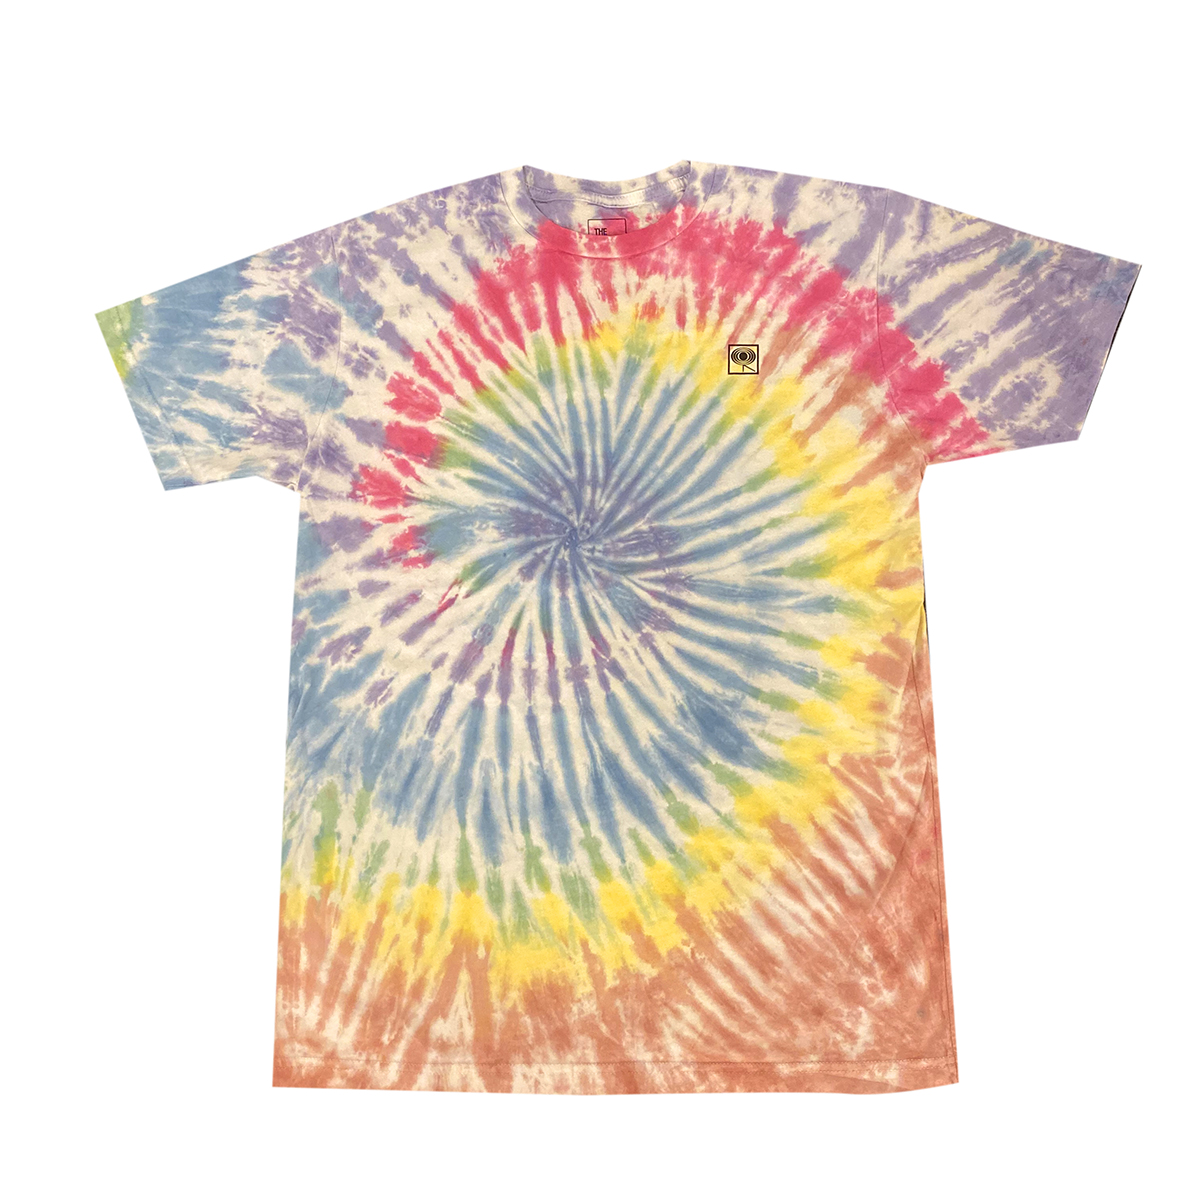 Columbia Records TieDye T-Shirt